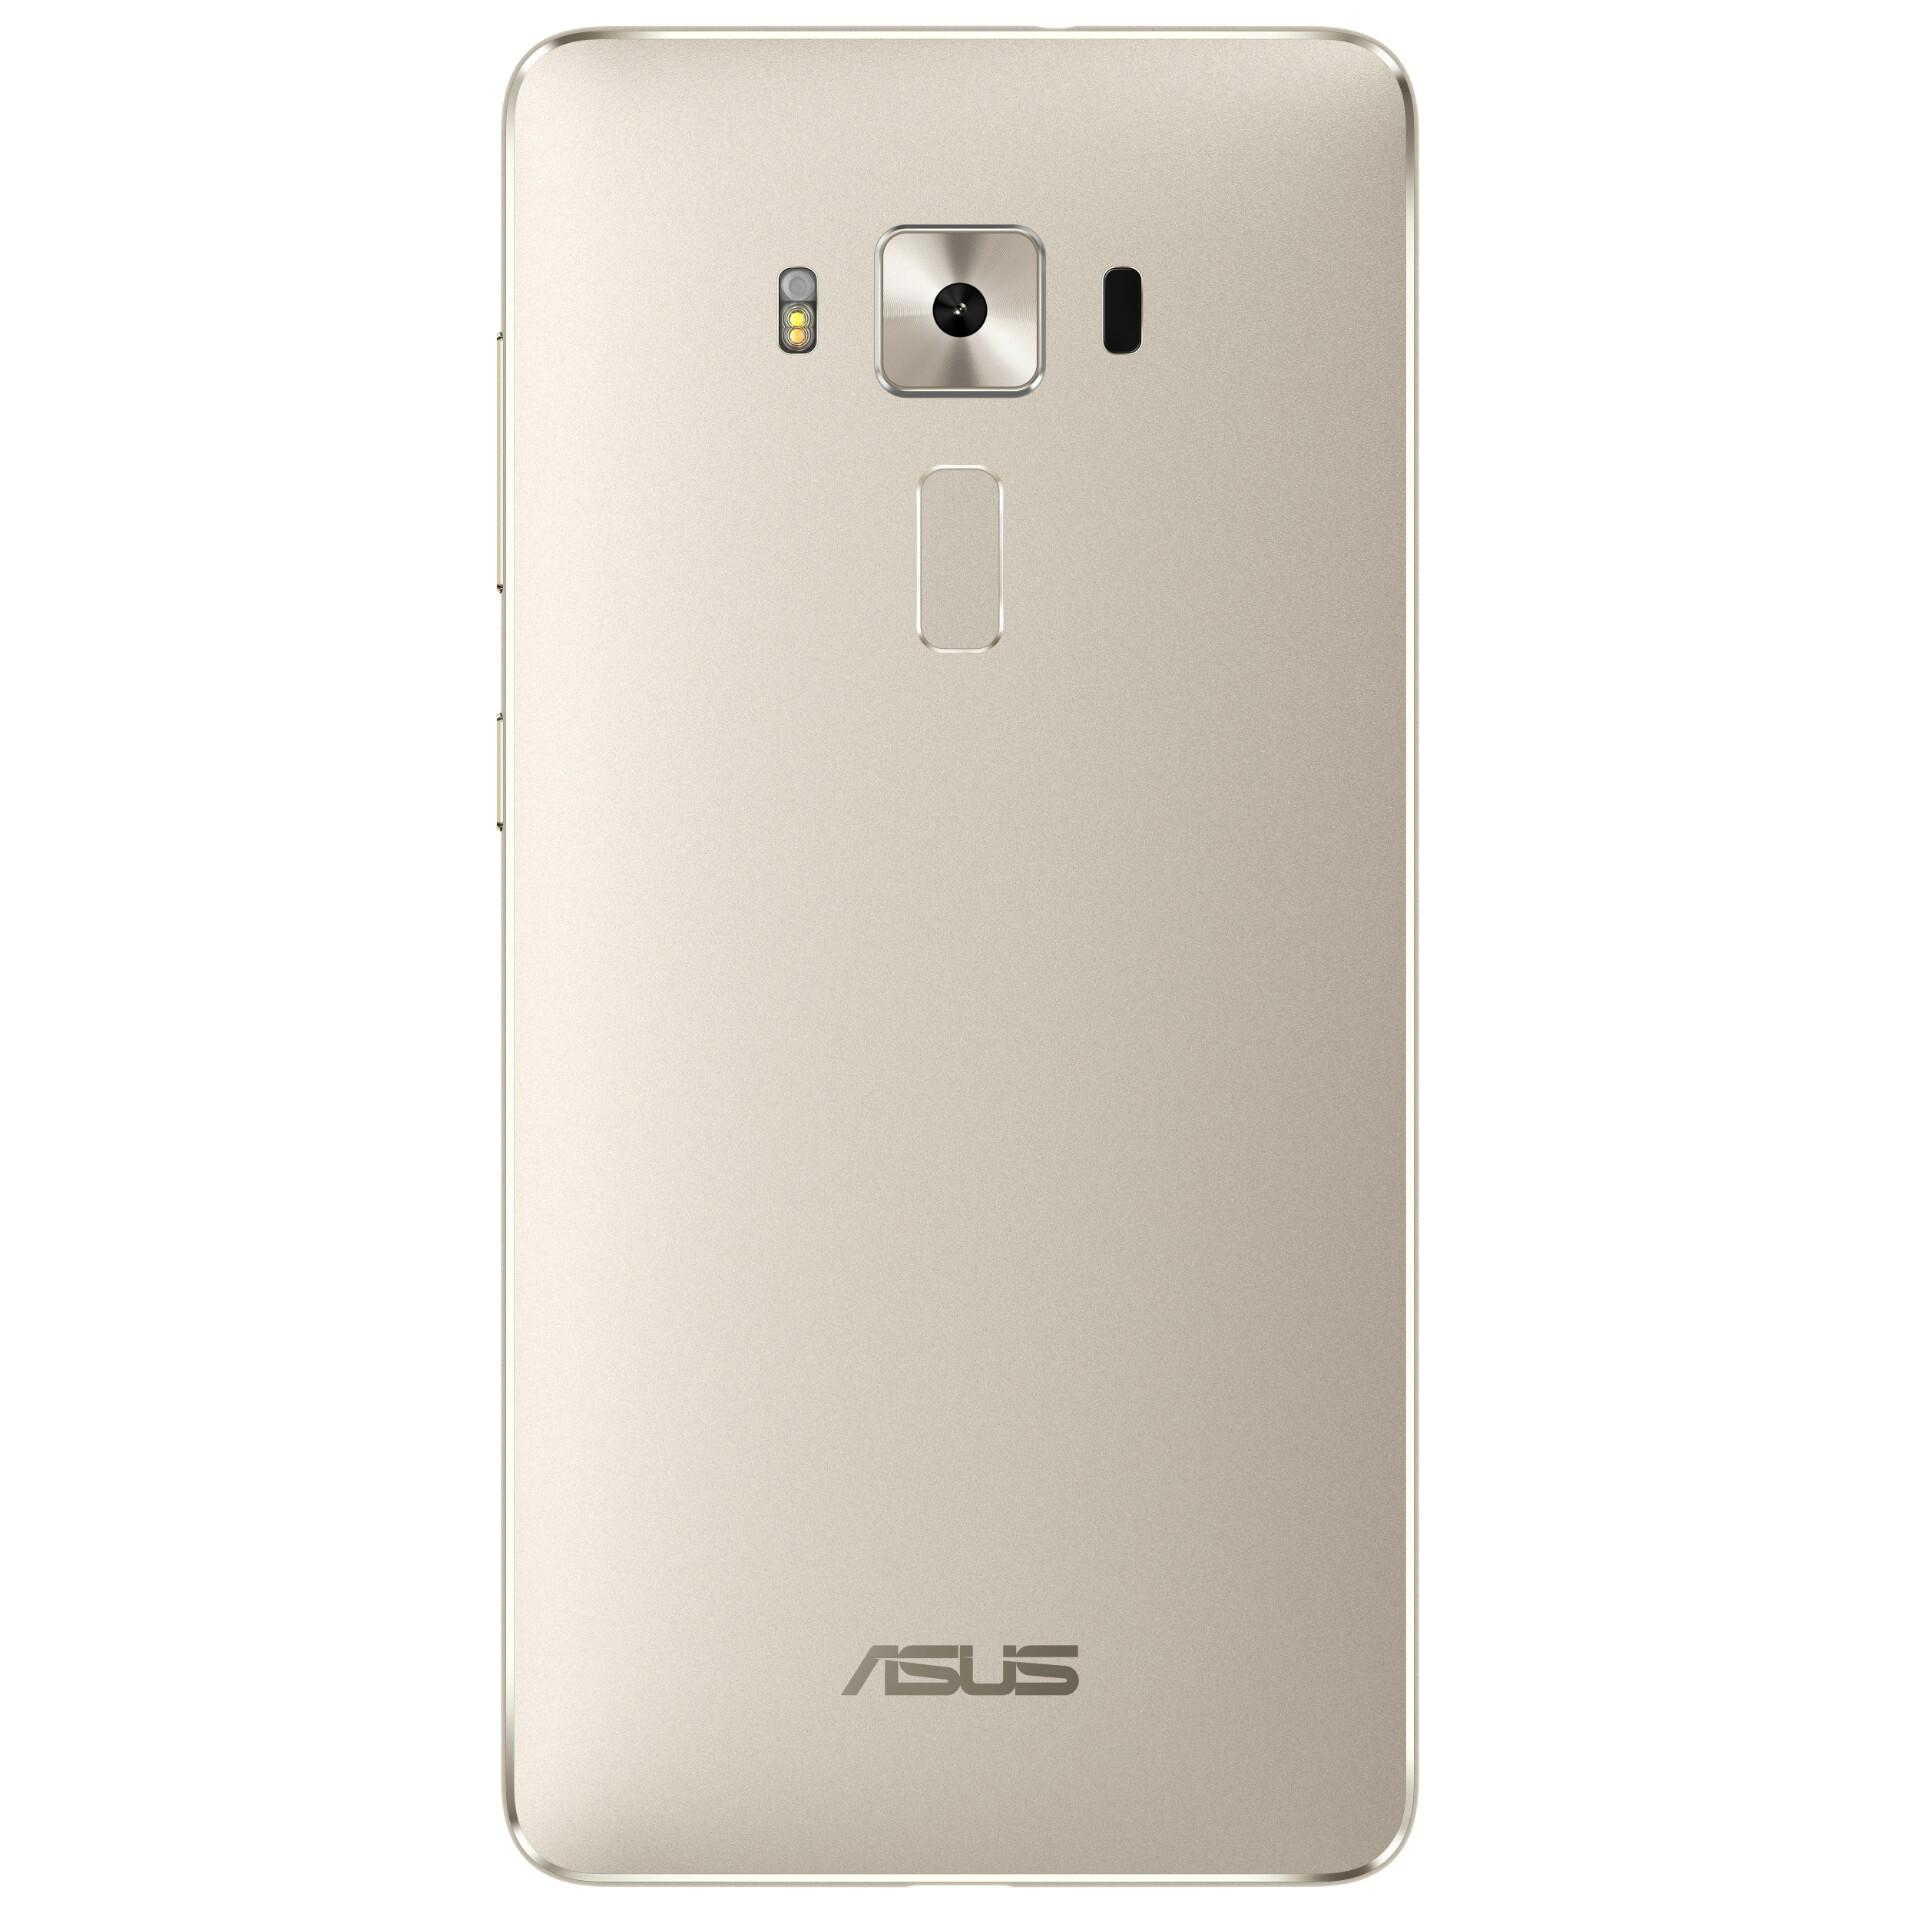 asus zenfone 3 deluxe zs570kl silver image gallery. Black Bedroom Furniture Sets. Home Design Ideas